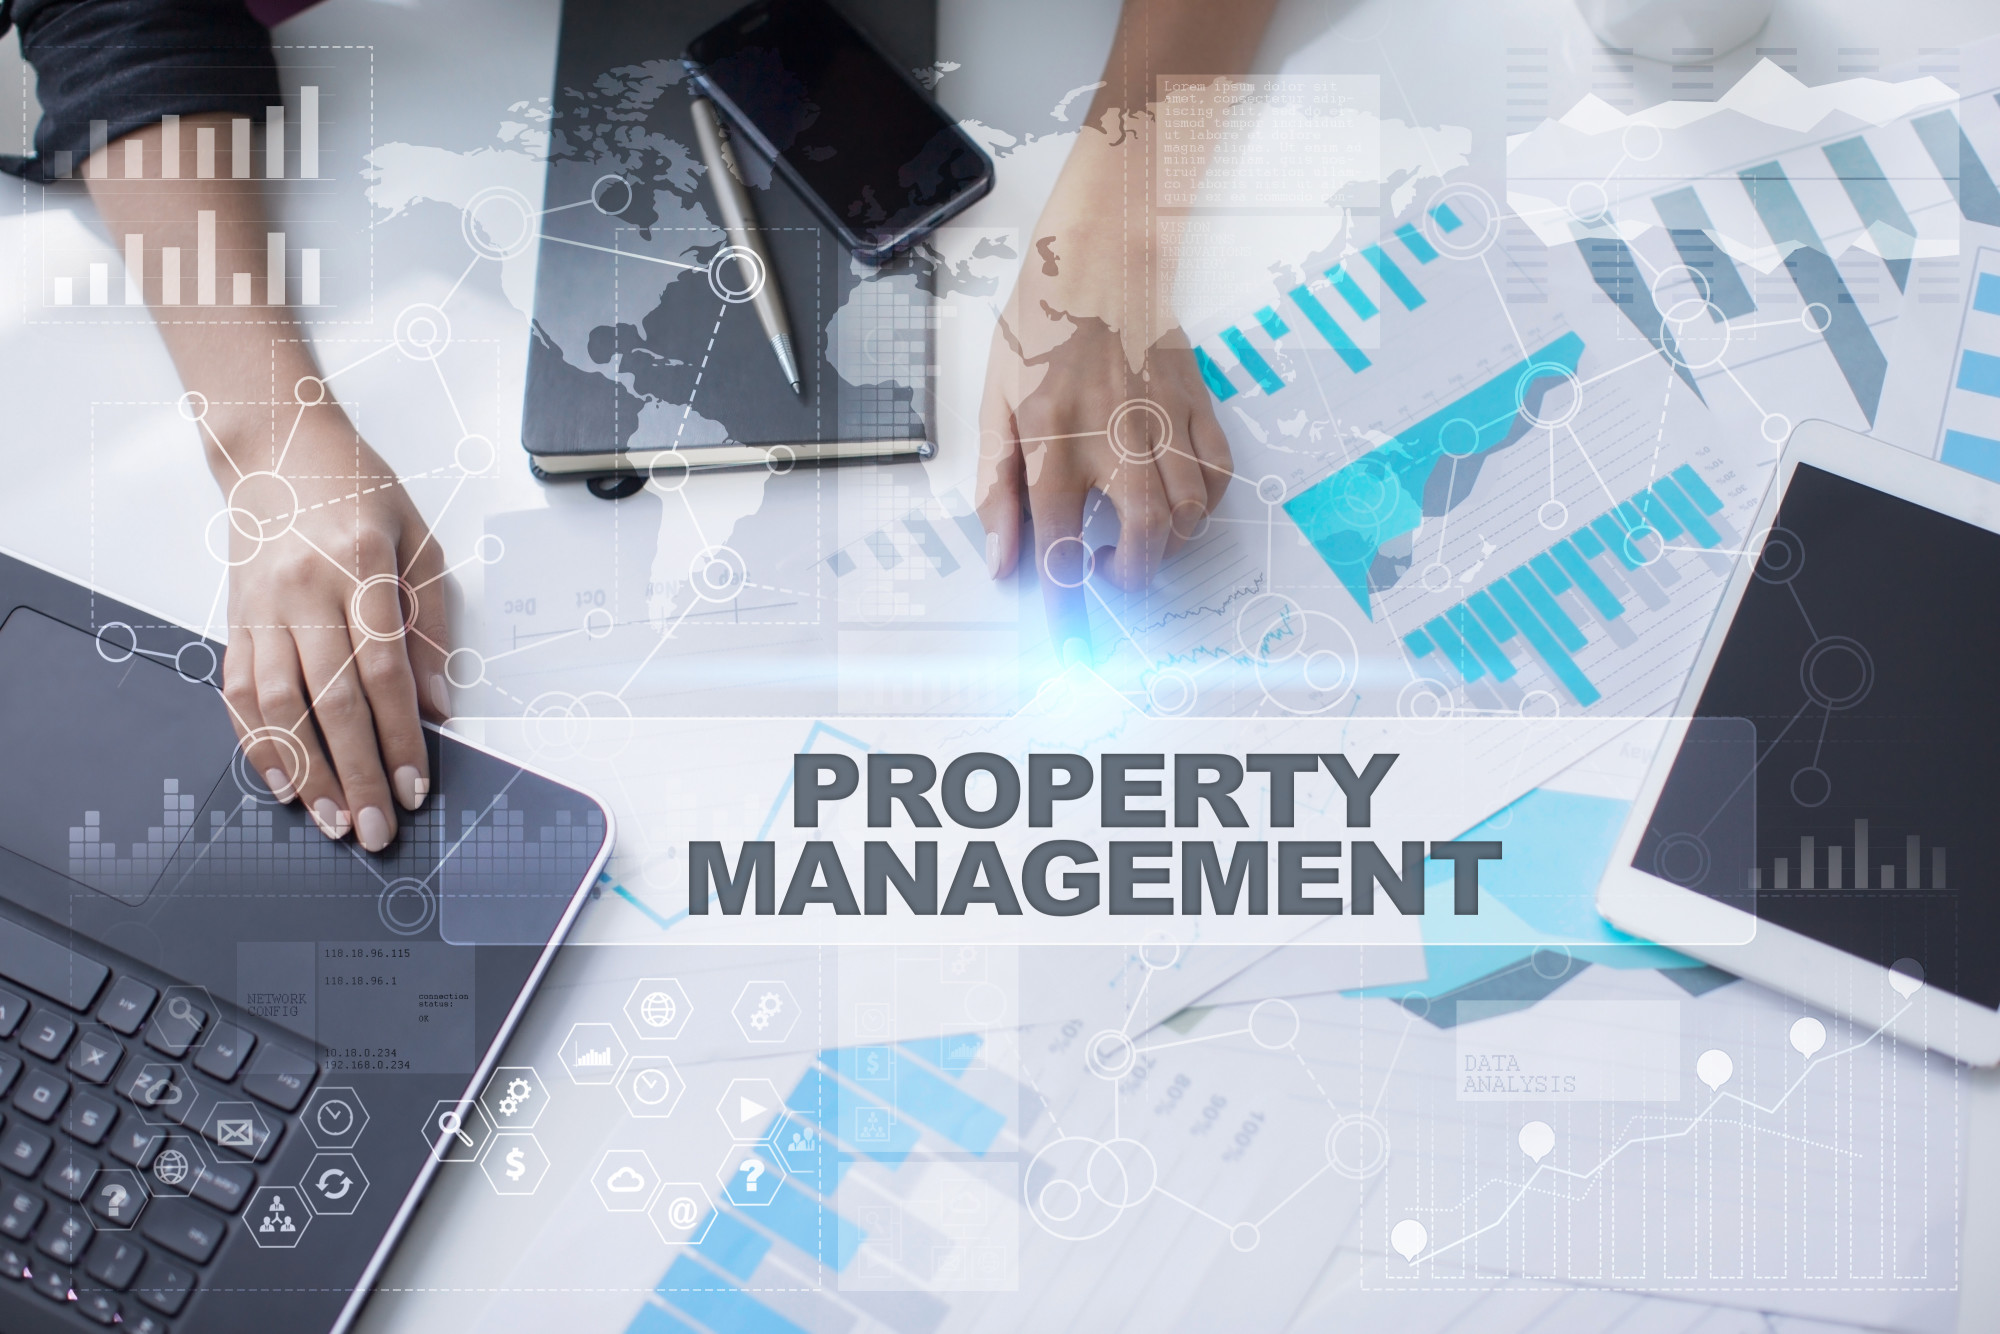 Woman working with documents, Tablet pc and notebook. Property management Concept.